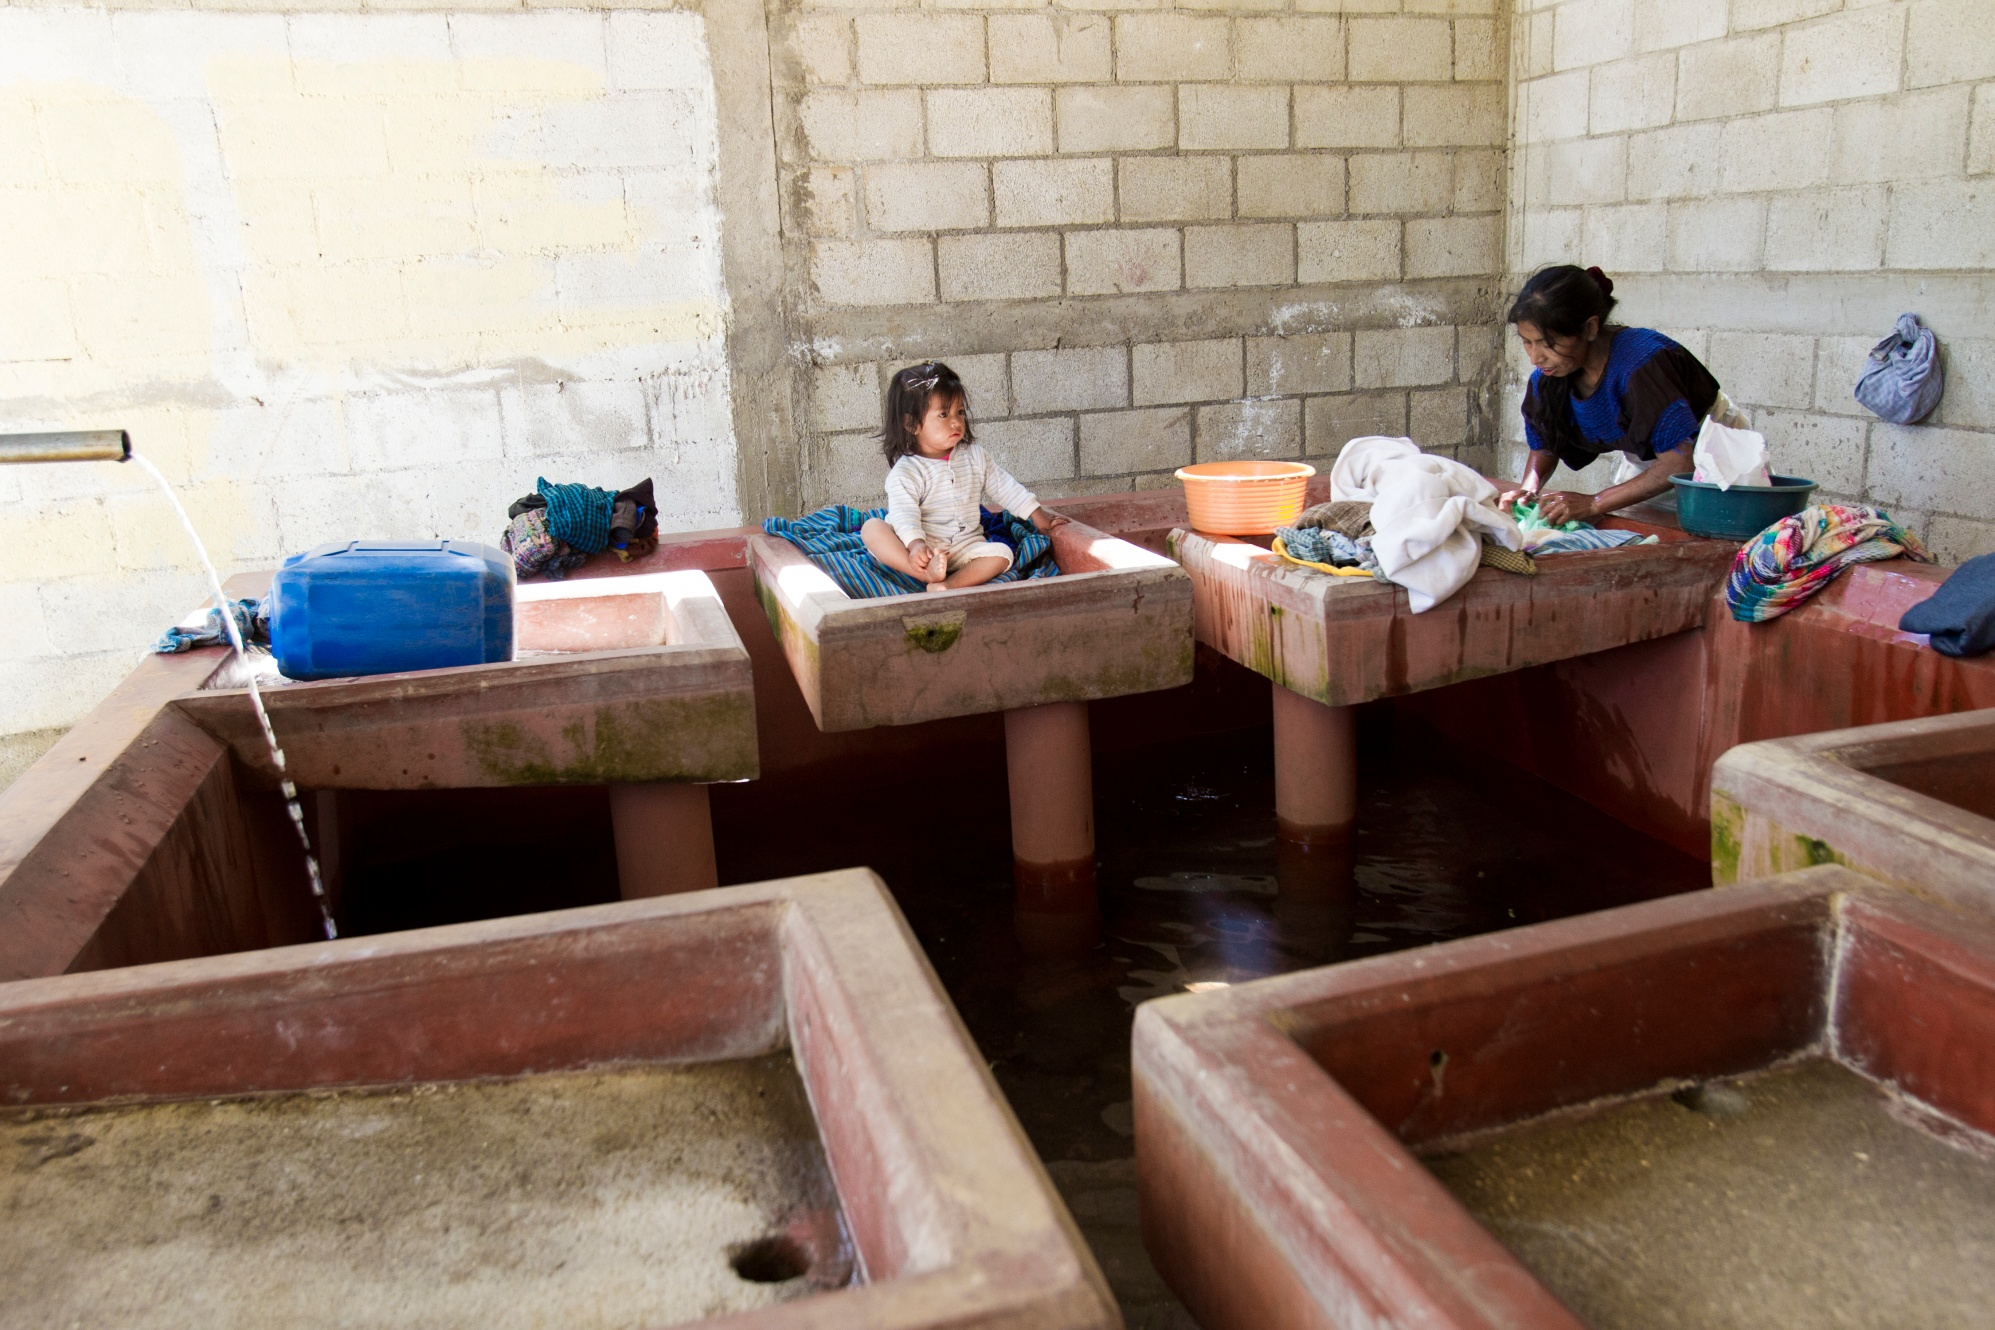 A woman washes clothes at a public laundry facility near El Tunino school in Sumpango, Guatemala. El Tunino is one of nine schools in the Sumpango area at which Rotary is improving water and sanitation facilities. It now has clean water, new hand washing stations, toilets, septic tanks, and drainage systems.